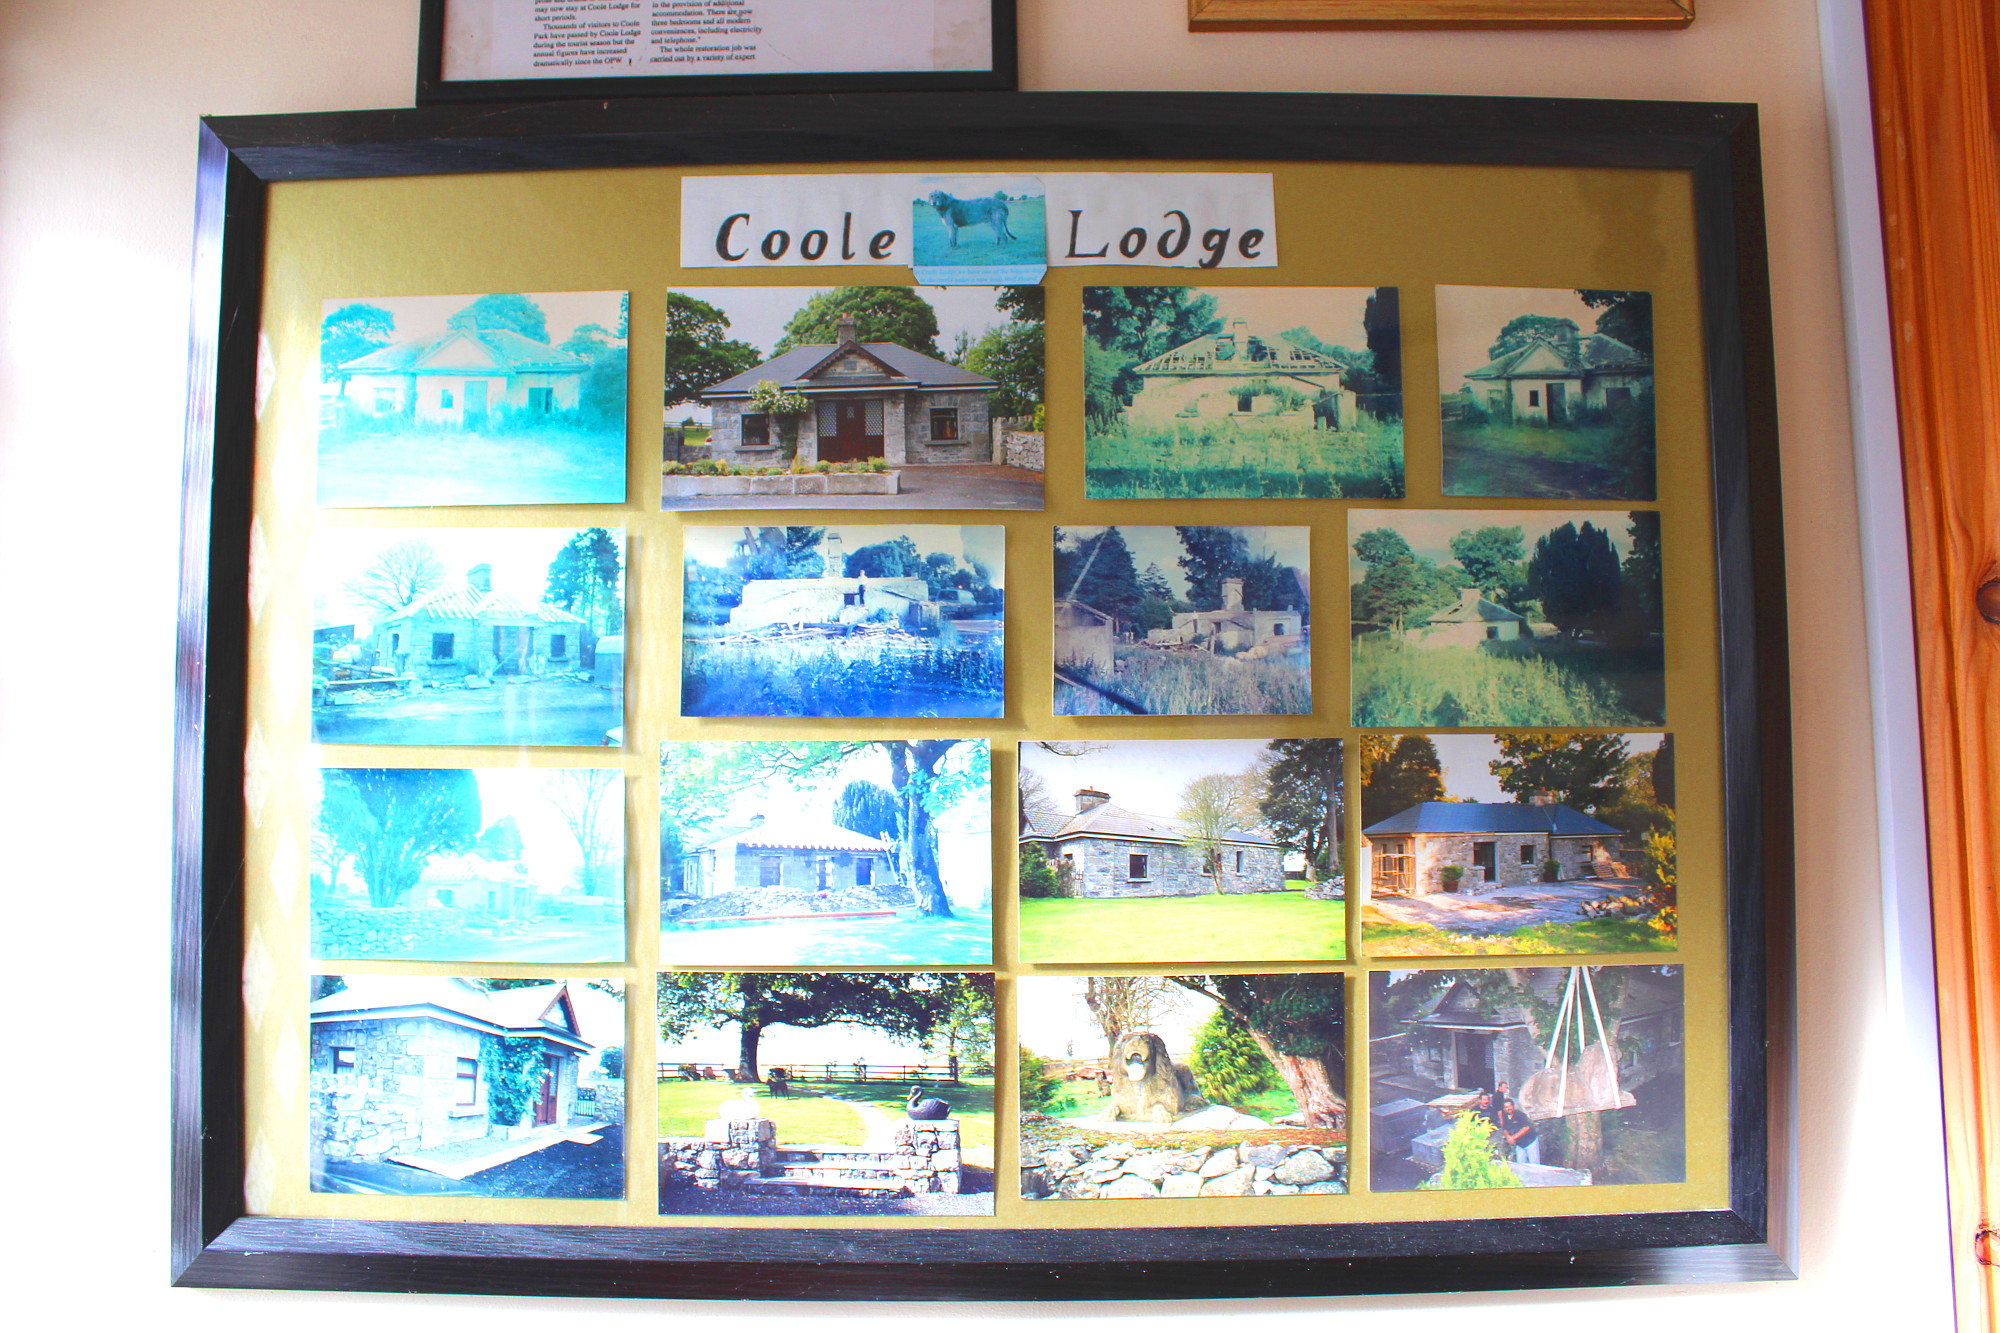 Coole Park Lodge